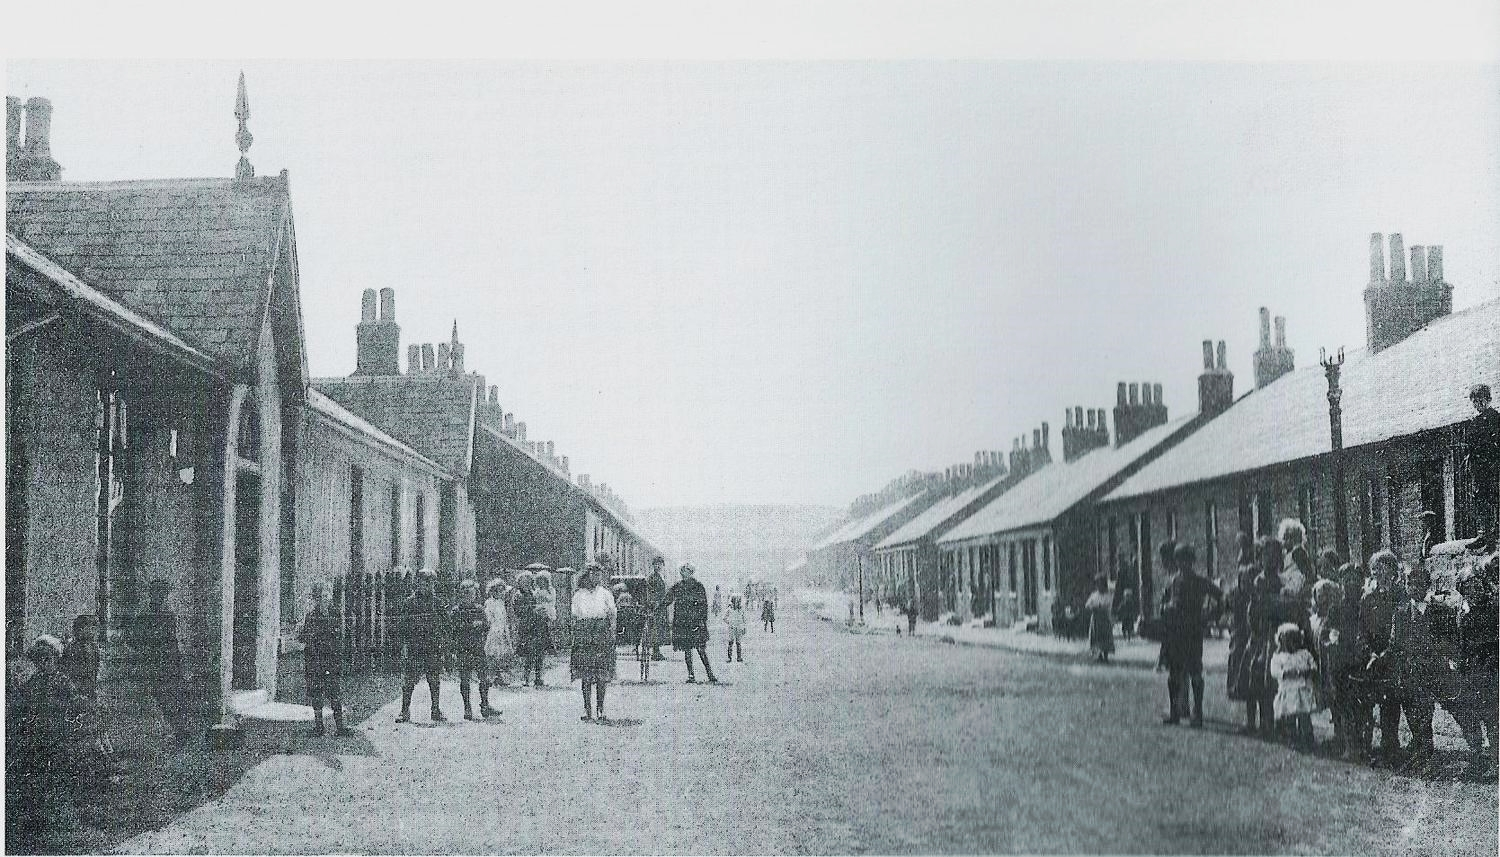 Victoria Street, Harthill, Lanarkshire, where GGGF John Law died in 1899. Many of Harthill's Miners' rows were situated here. Victoria Street is named after Queen Victoria who reigned 1837 - 1901.